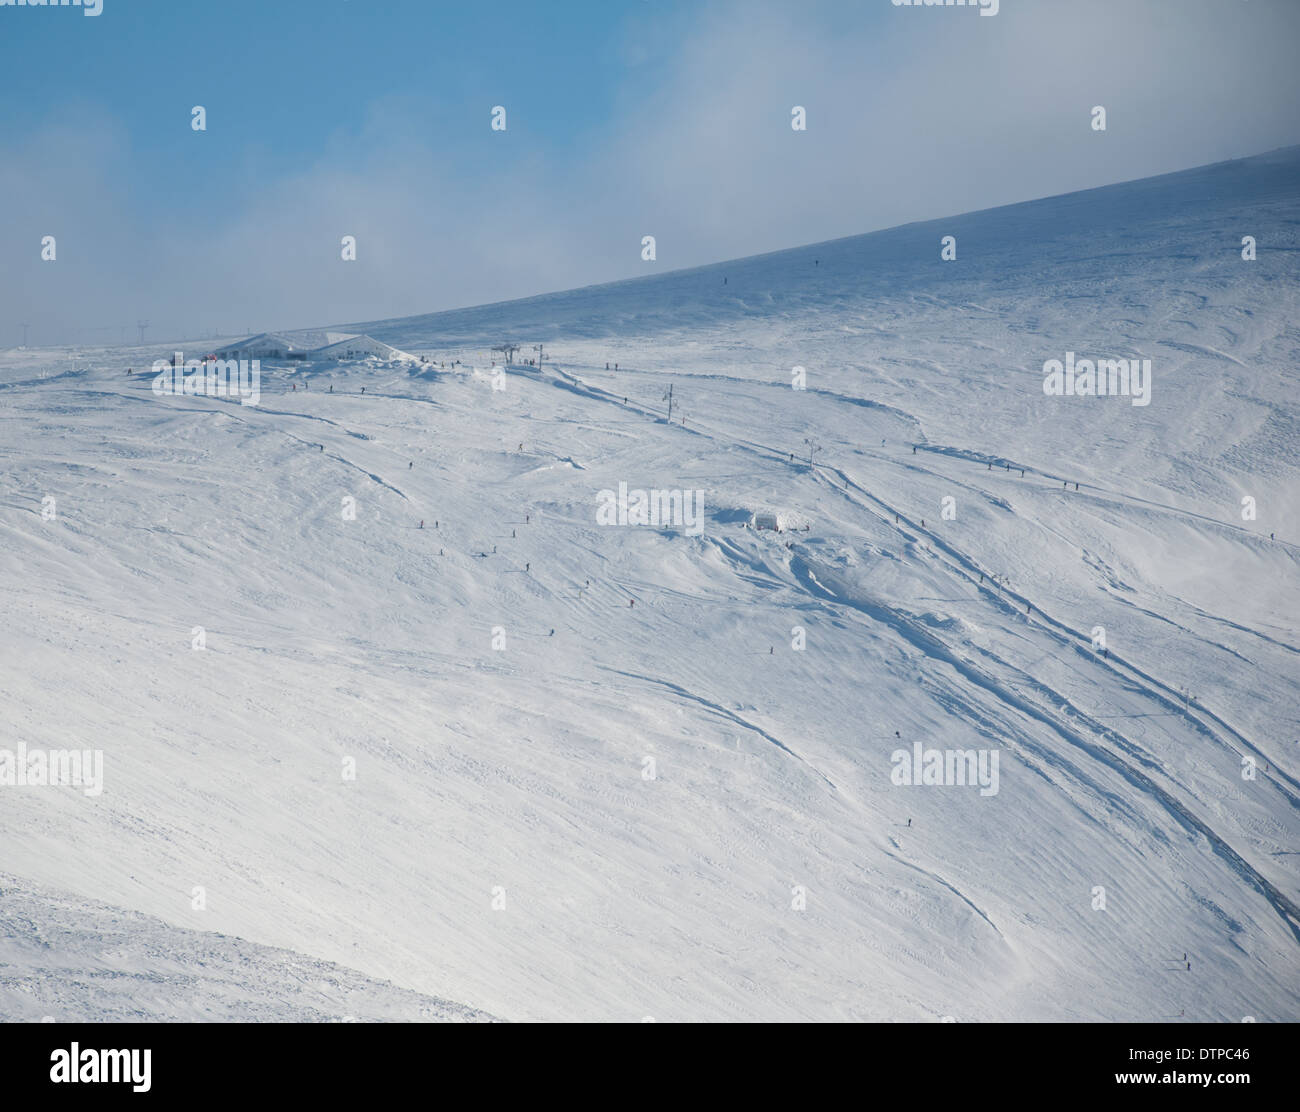 The top of the Cairngorm mountain White Lady ski run, Ptarmigan Resturant and Funicular Railway all under heavy snow.  SCO 9014. - Stock Image